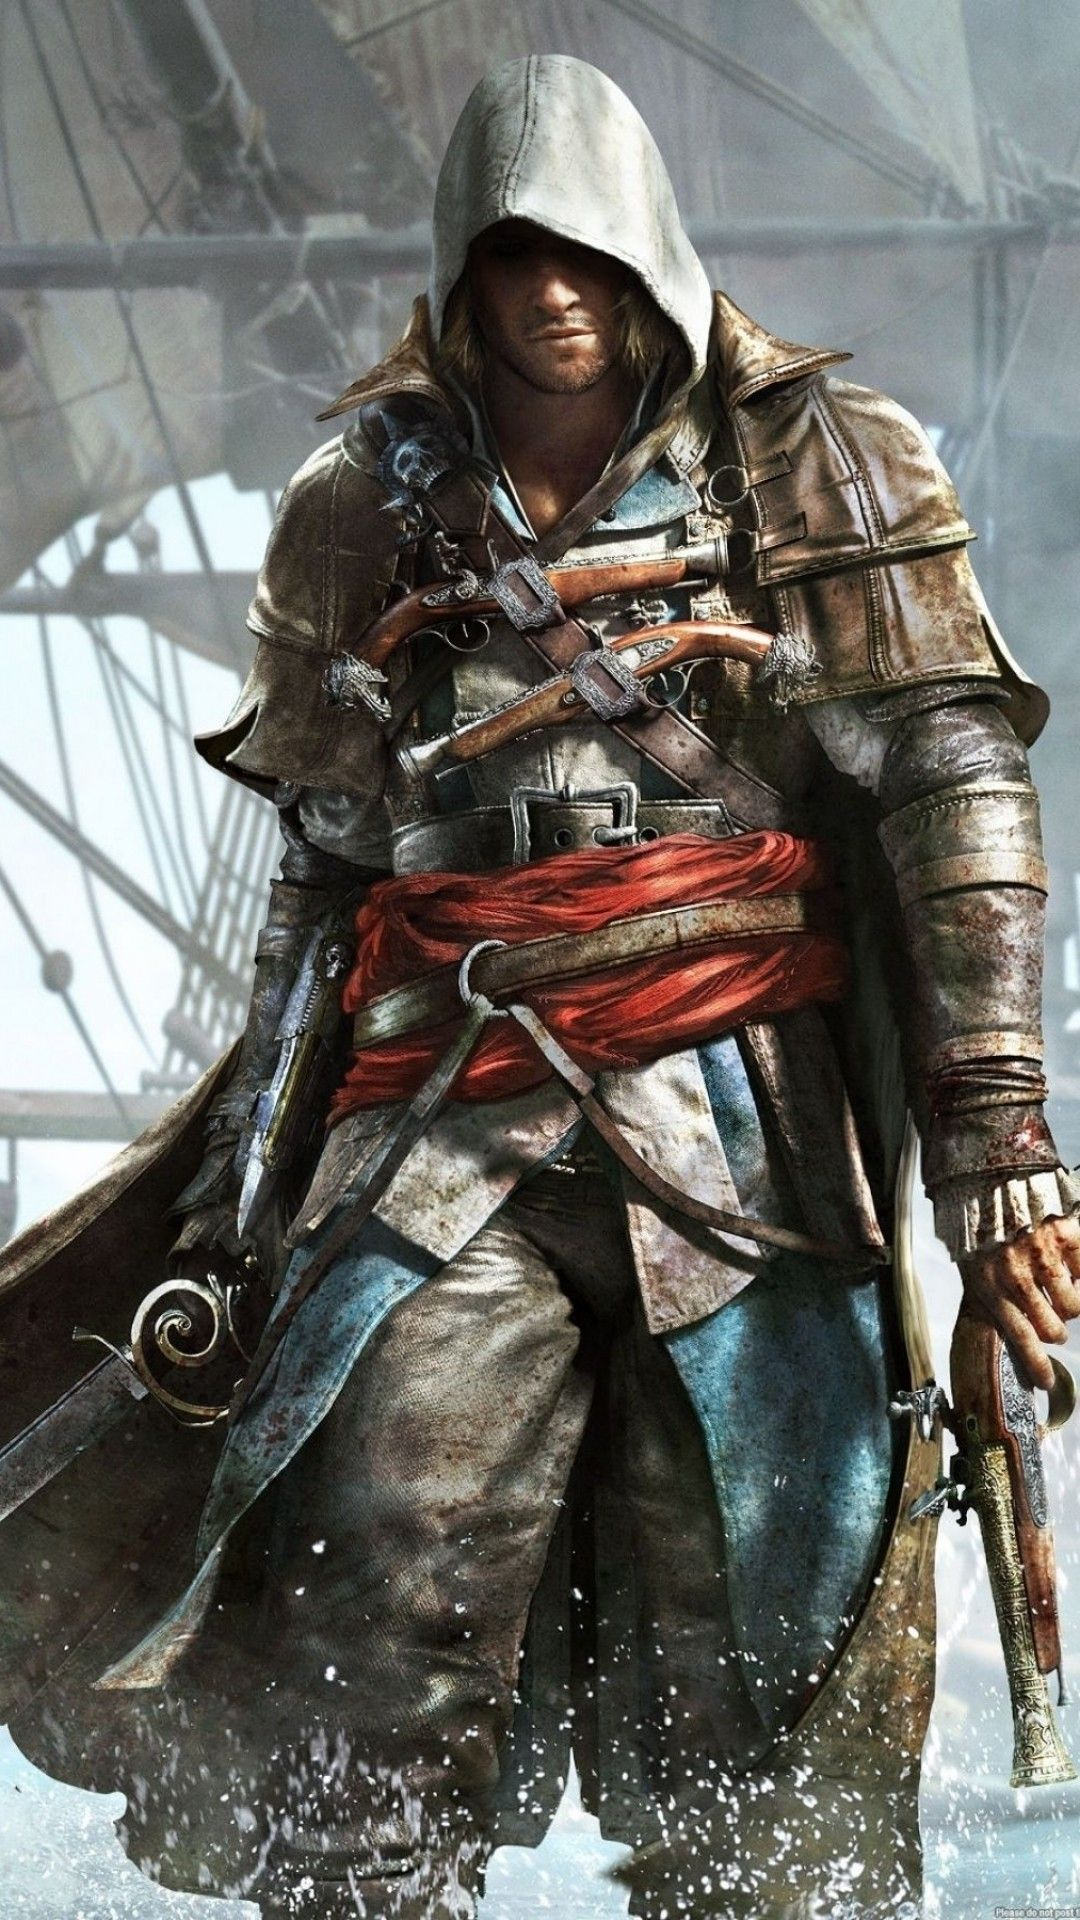 Assassin's Creed next location has been revealed in 2020